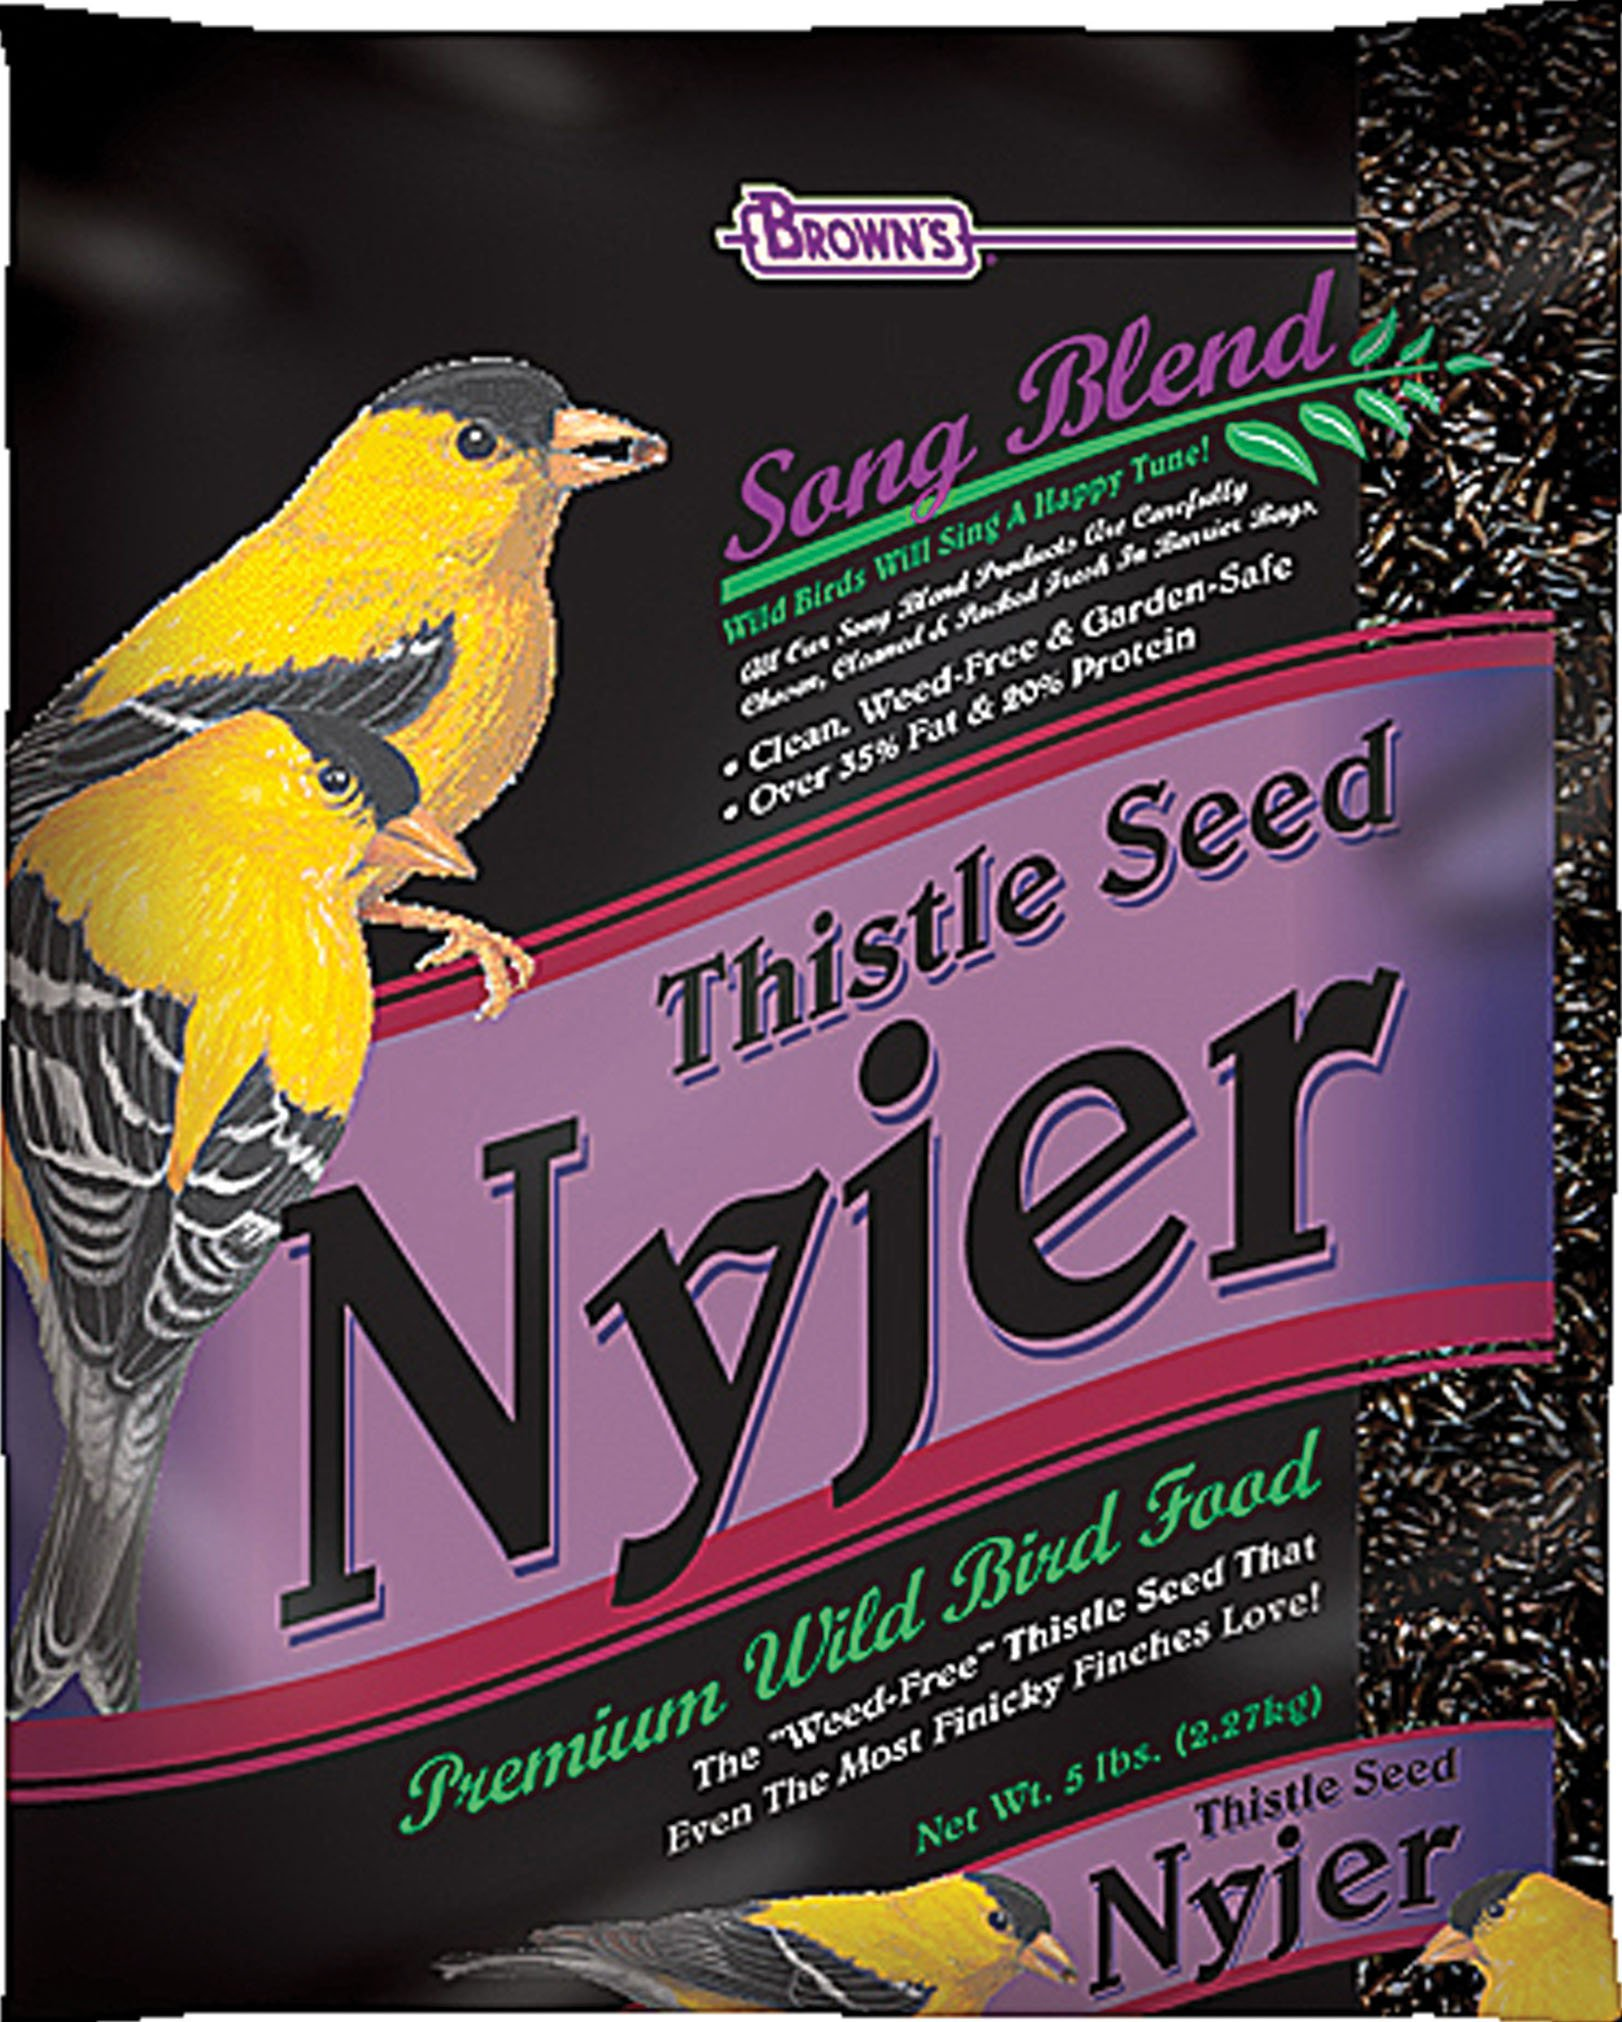 F.M. Brown's Song Blend Nyjer Thistle Seed for Pets, 2-Pound by F.M. Brown's (Image #1)